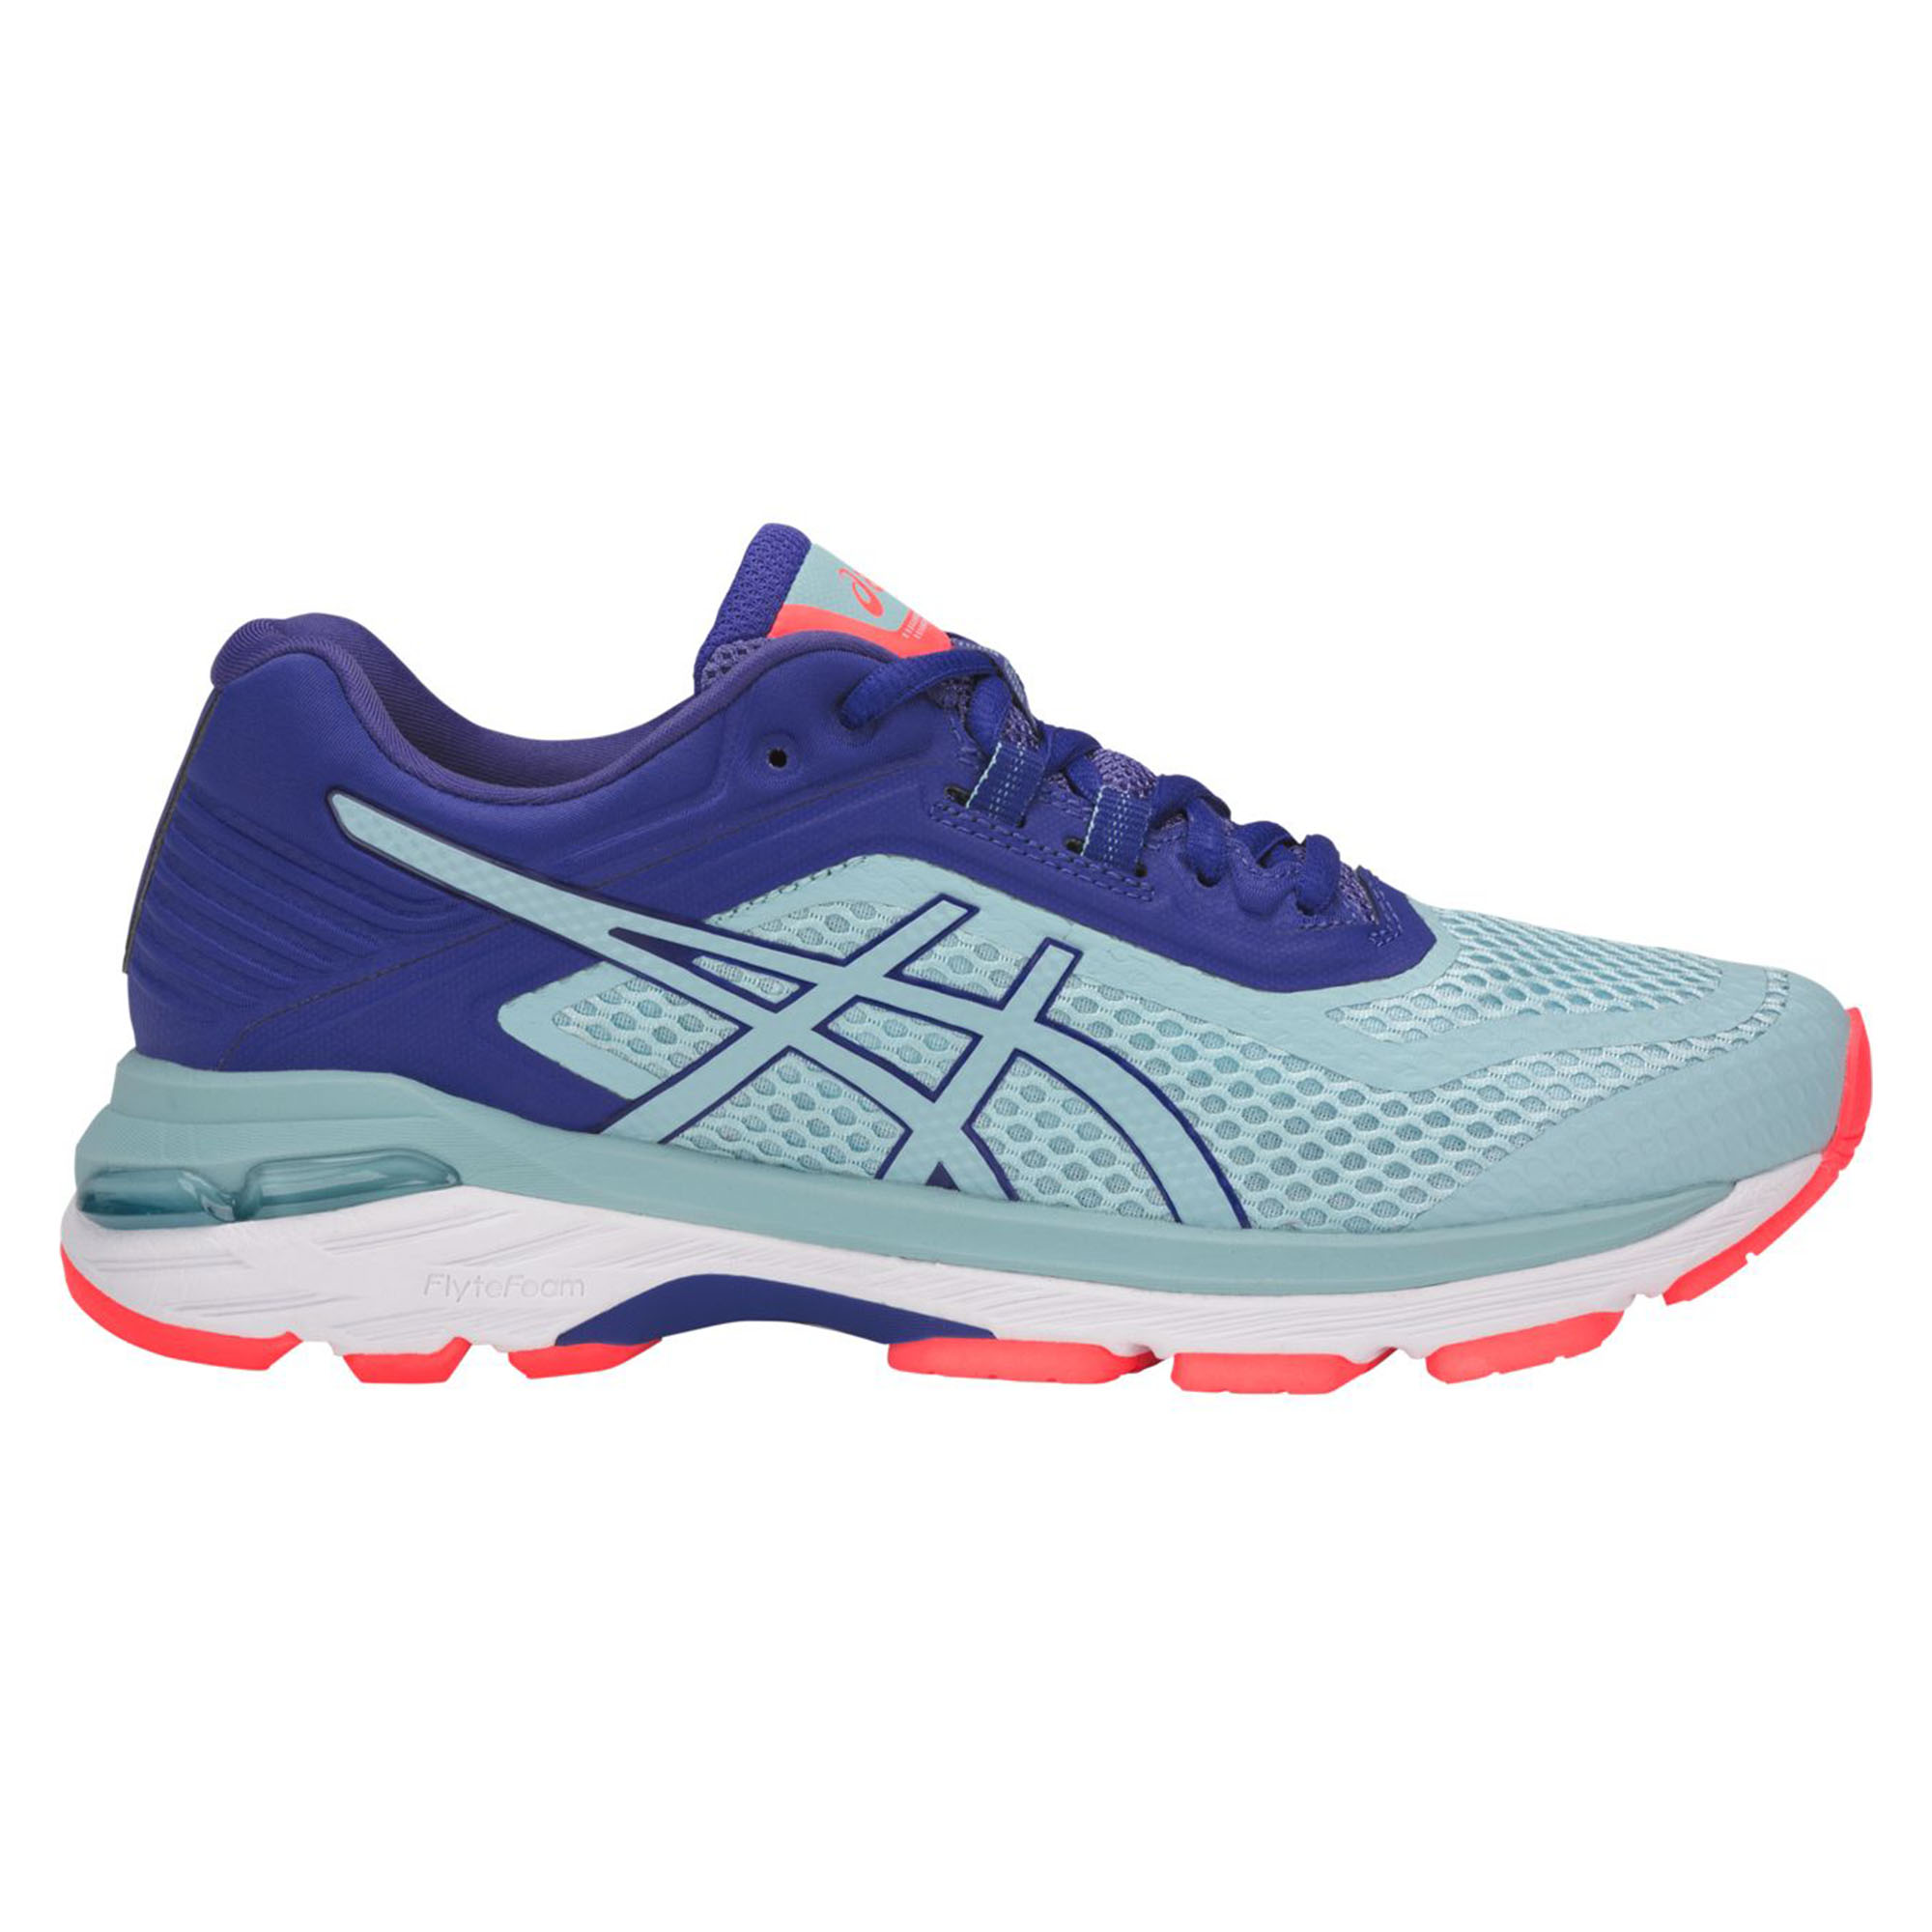 Asics Women s Gt 2000 6 Running Shoes - Sun   Ski Sports 667980504